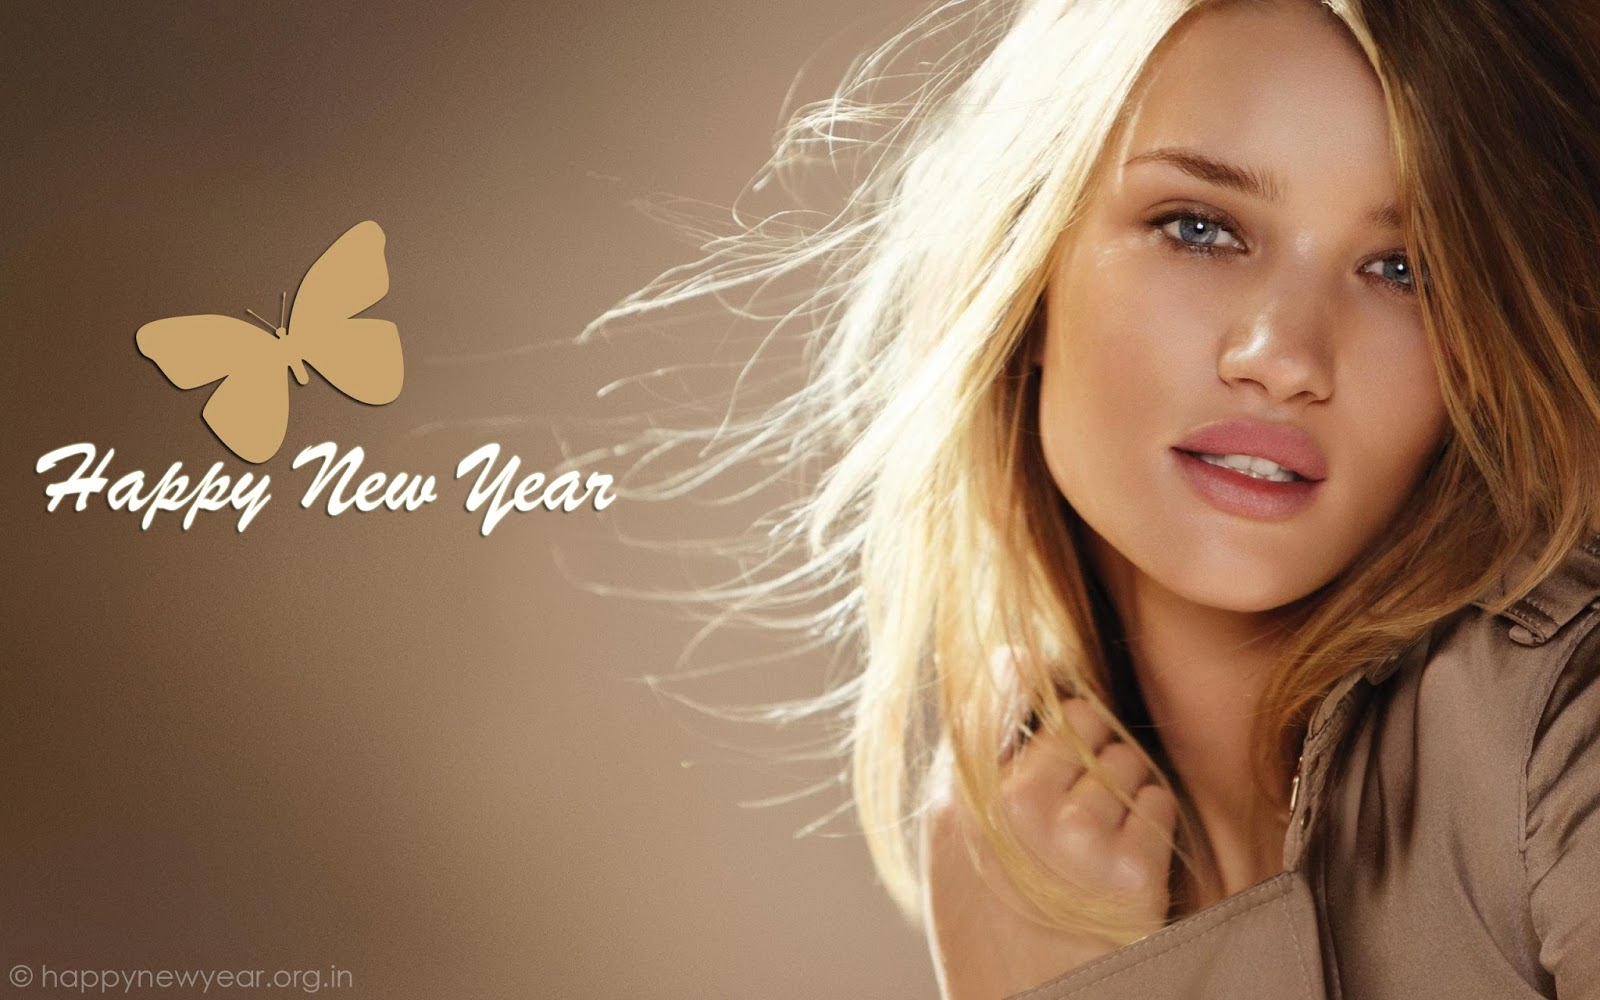 Happy New Year 2014 Greetings, New Year Wallpapers in HD, HQ